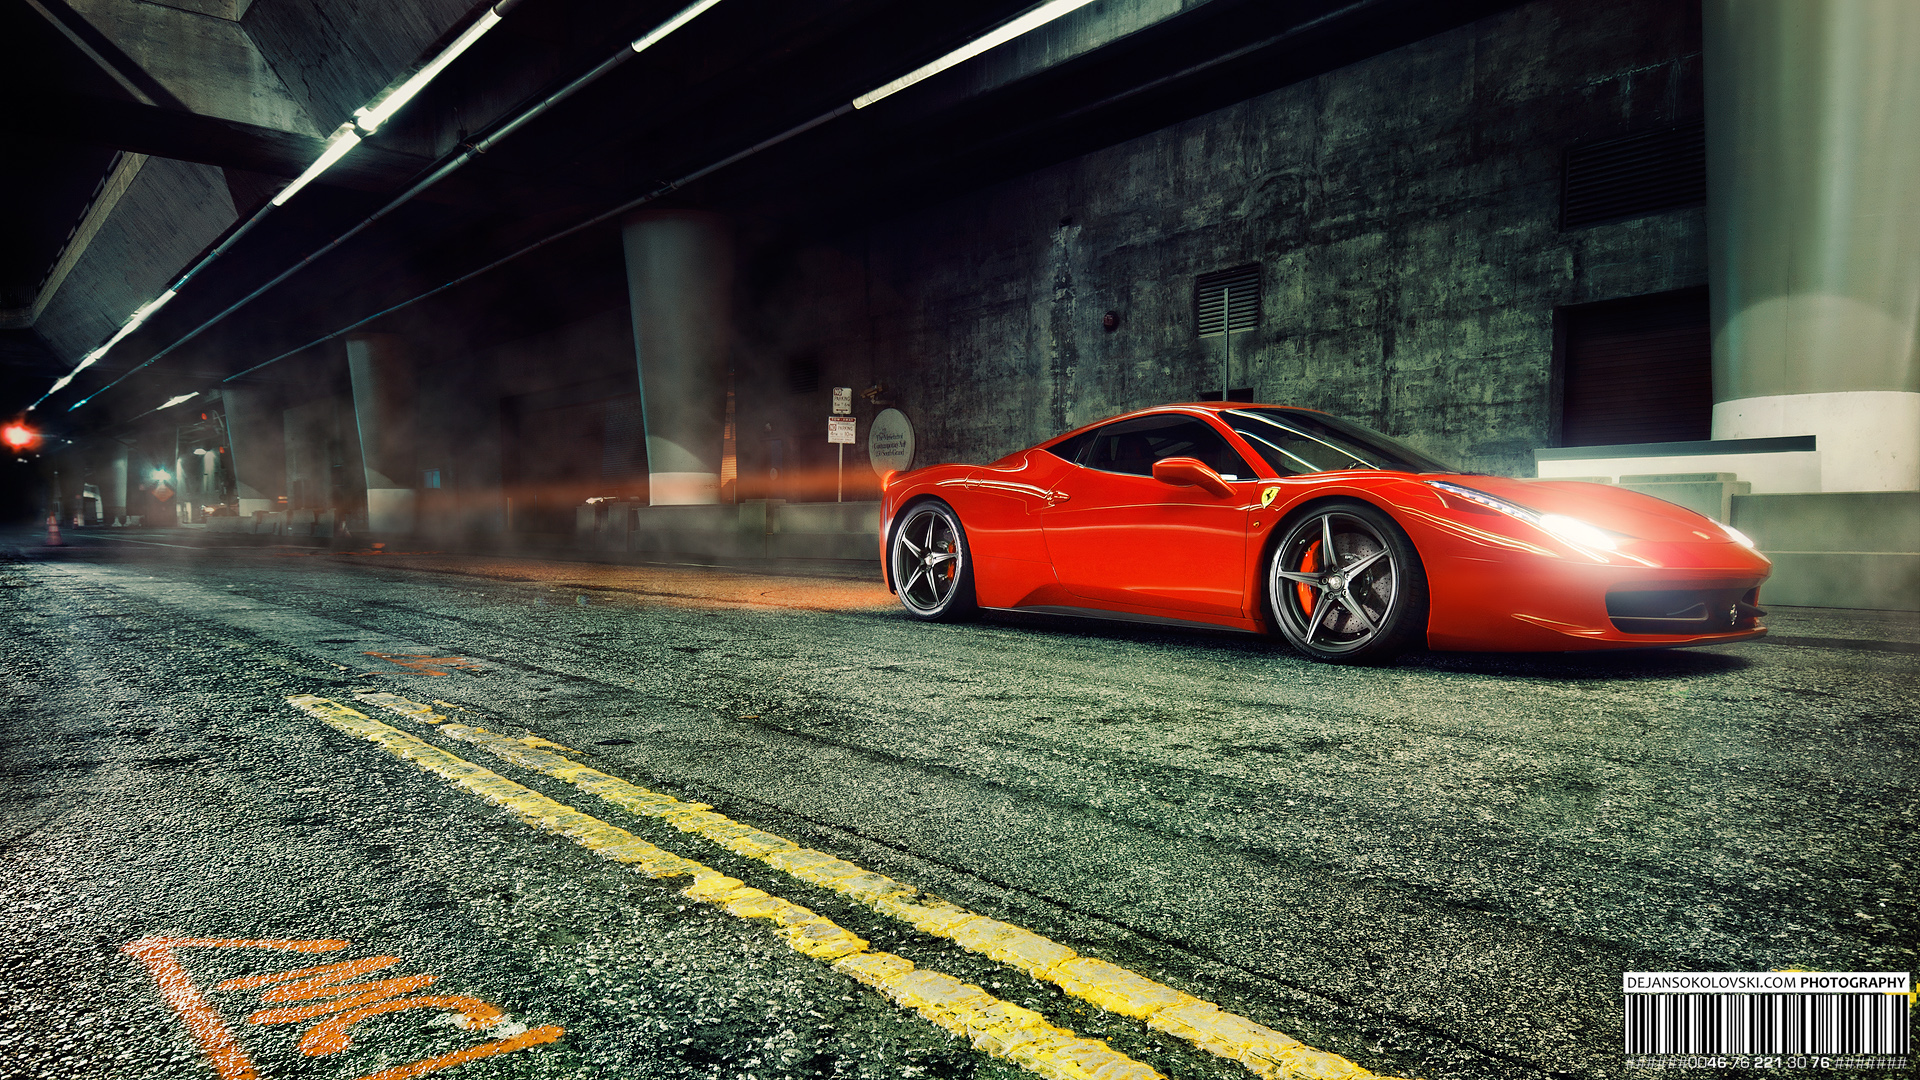 Ferrari 458 Italia Wallpapers HD Wallpapers 1920x1080